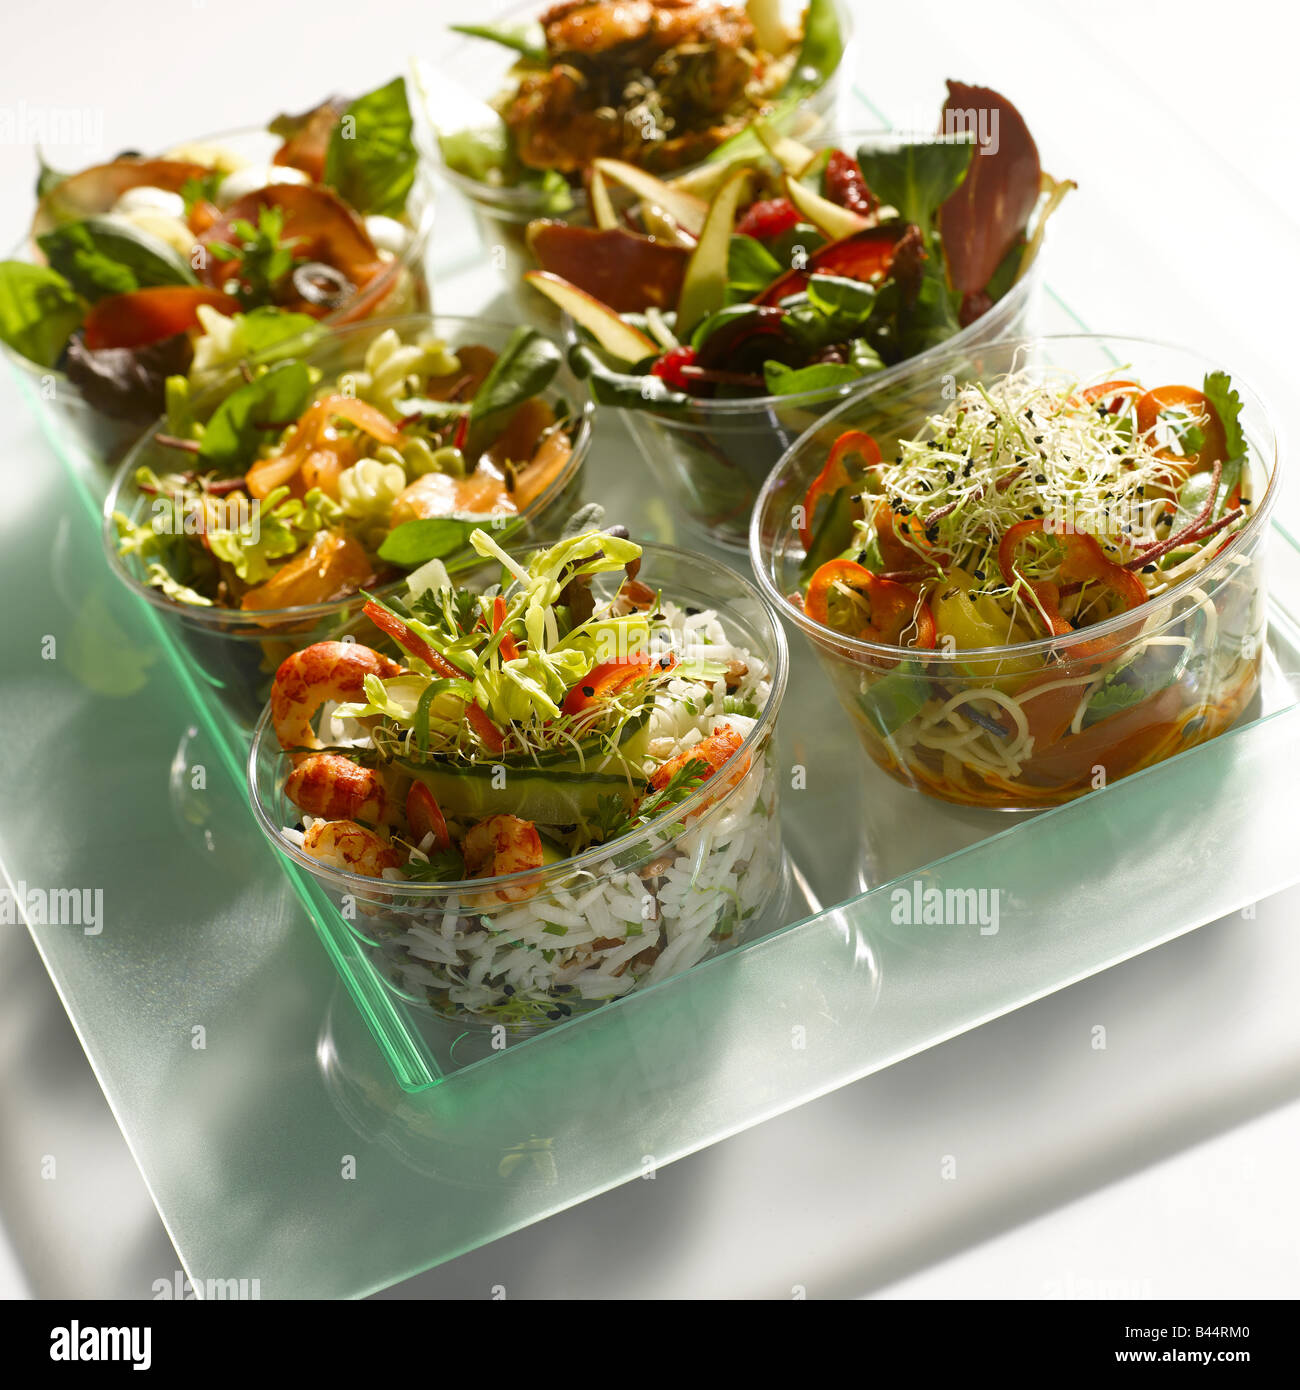 Salads on a tray - Stock Image